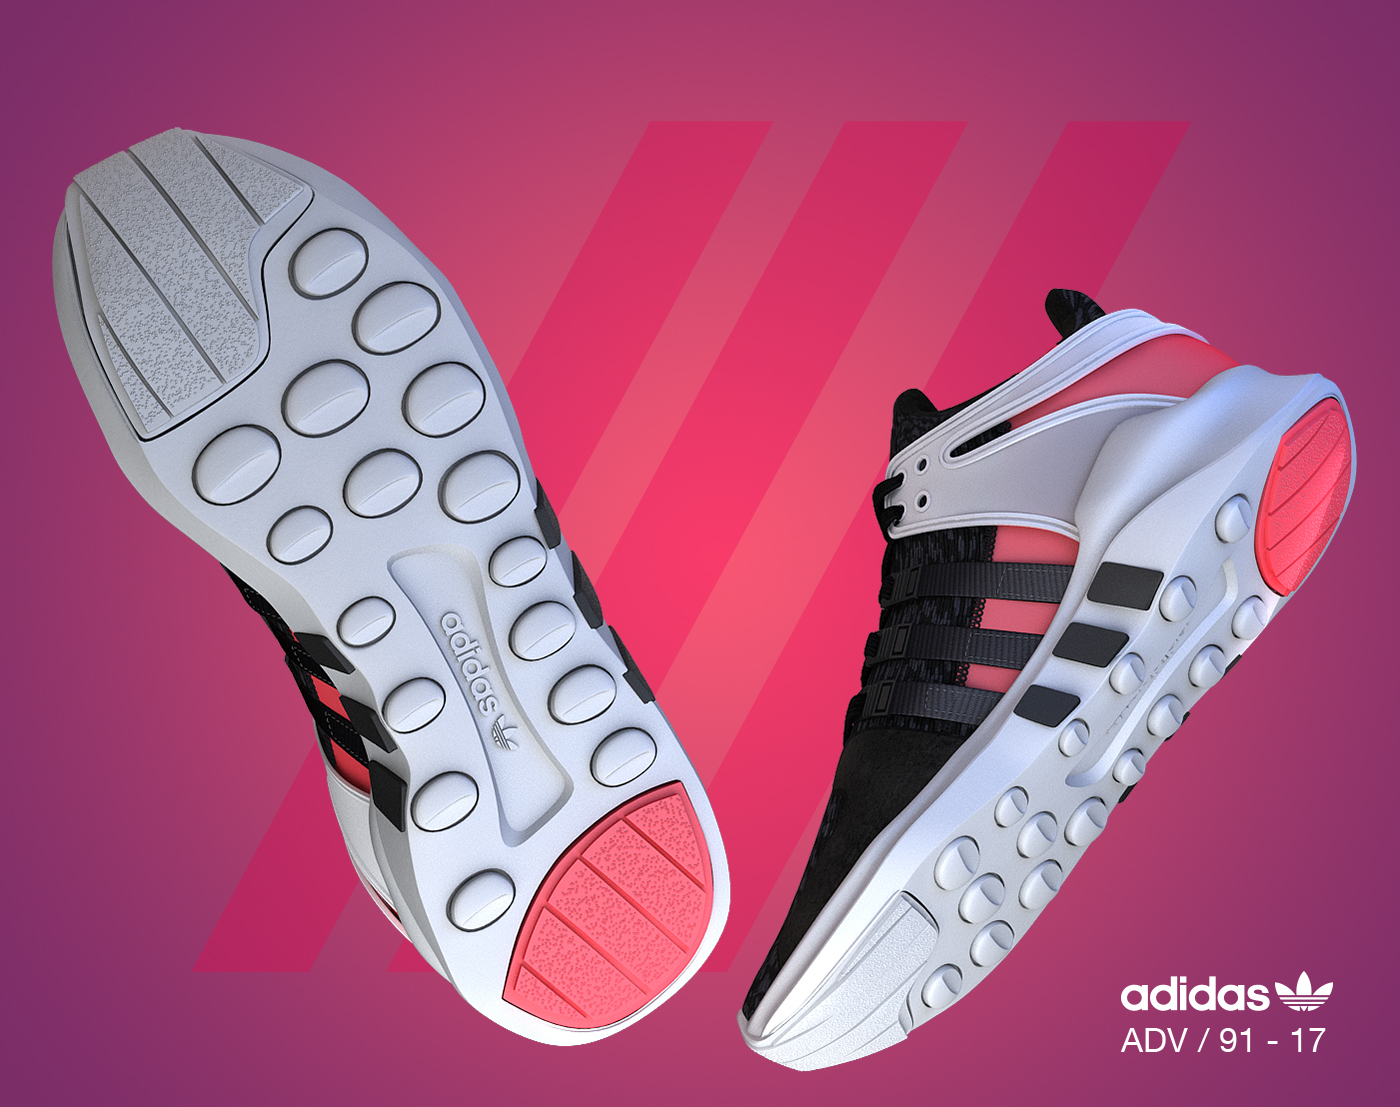 eqt adidas 3D vray MAX shoe shoes sport running sneakers